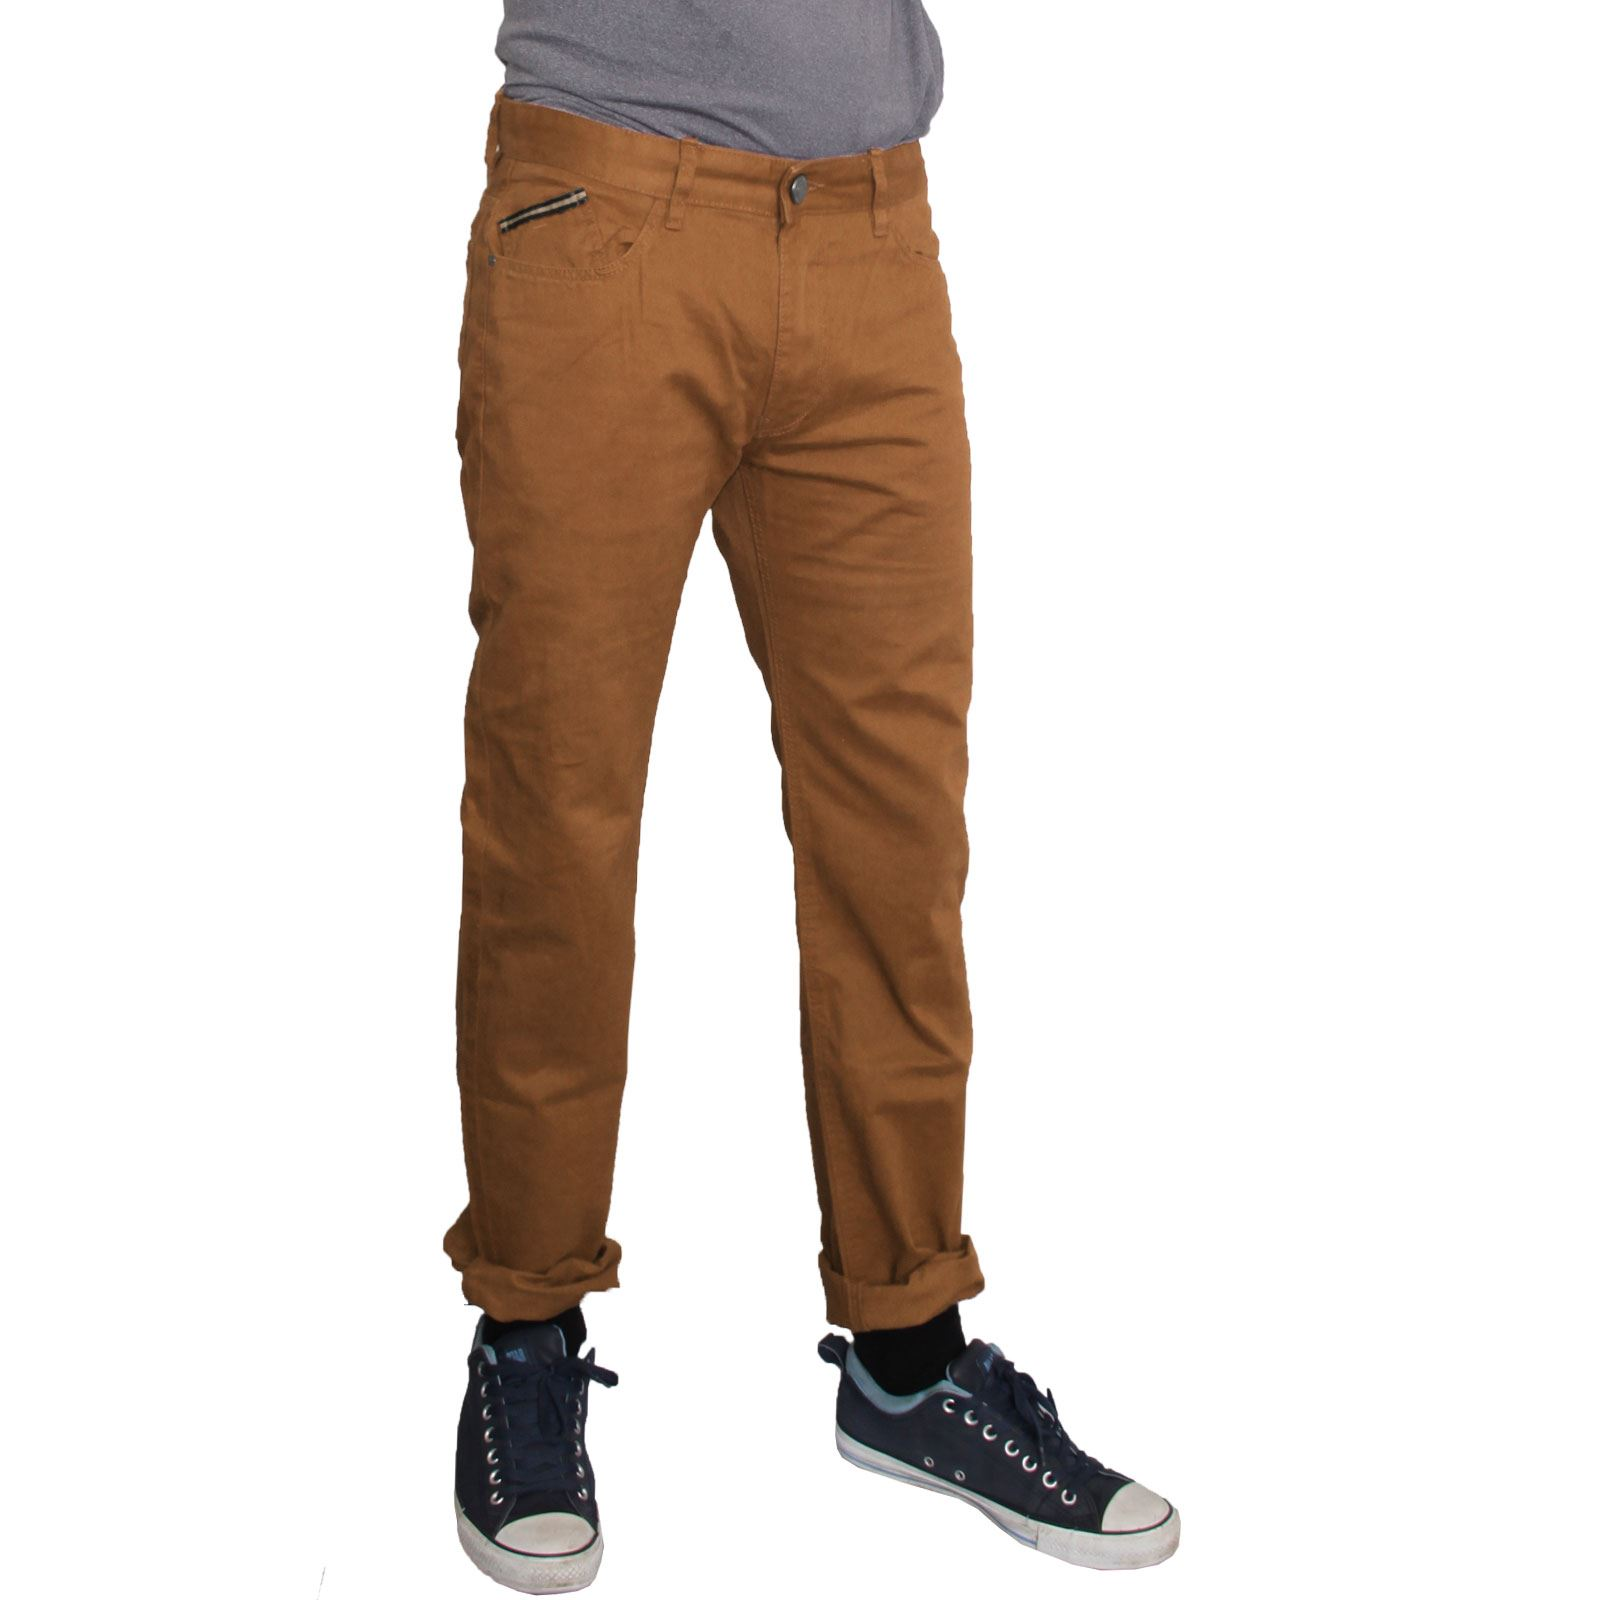 Free shipping BOTH ways on mens slim fit cargo pants, from our vast selection of styles. Fast delivery, and 24/7/ real-person service with a smile. Click or call